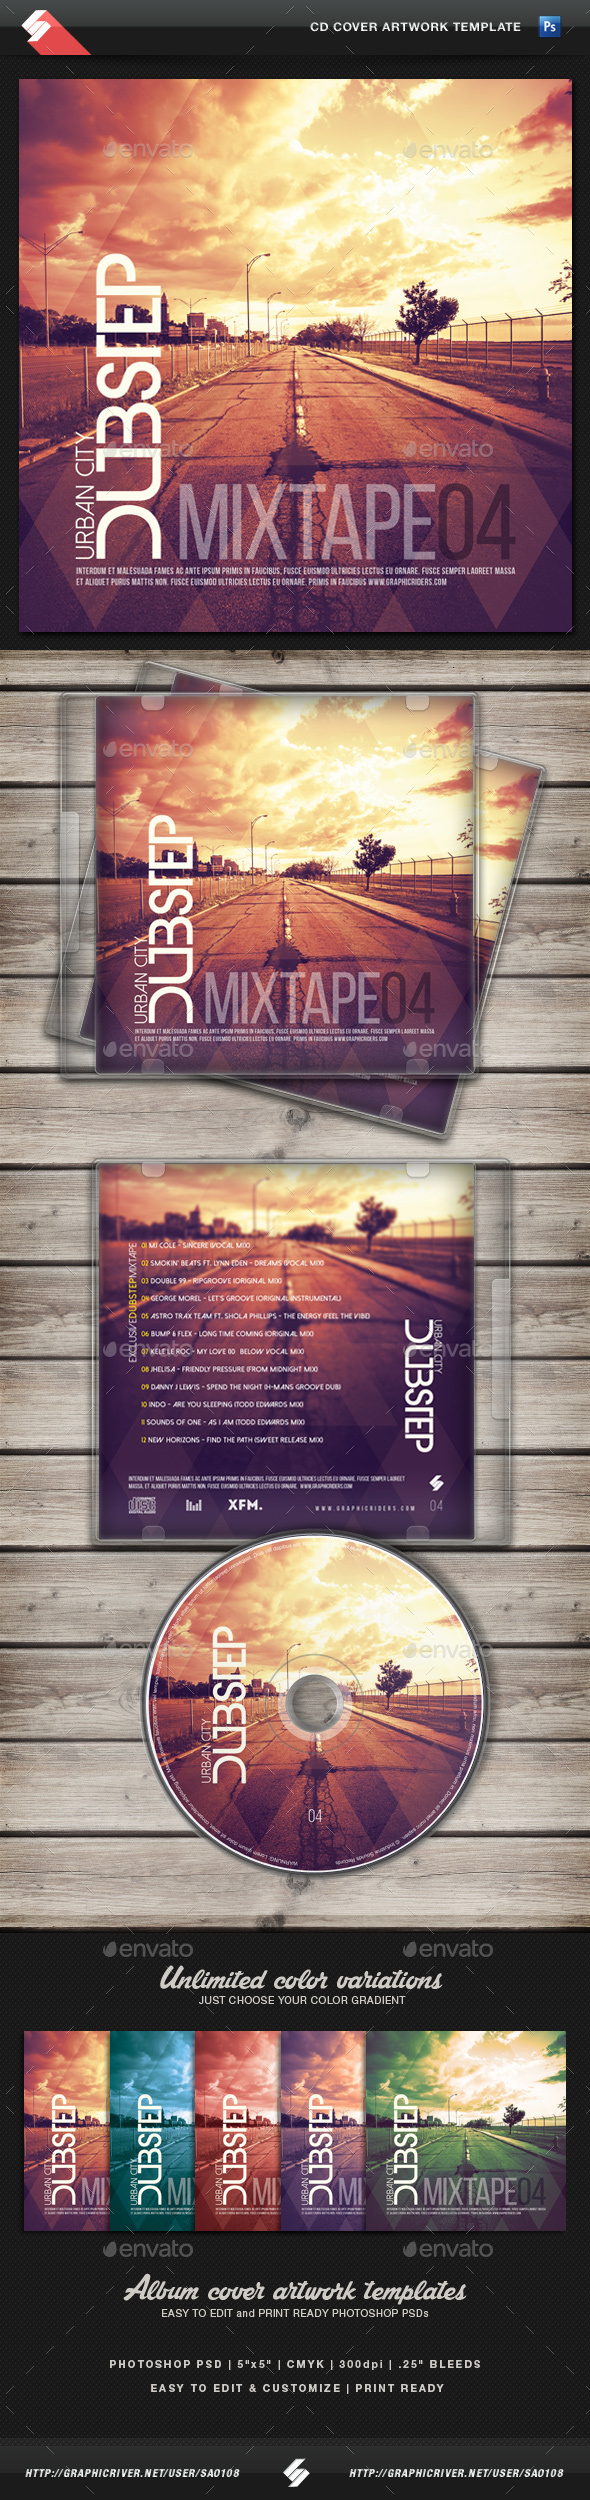 Urban City Dubstep vol.4 CD Cover Template